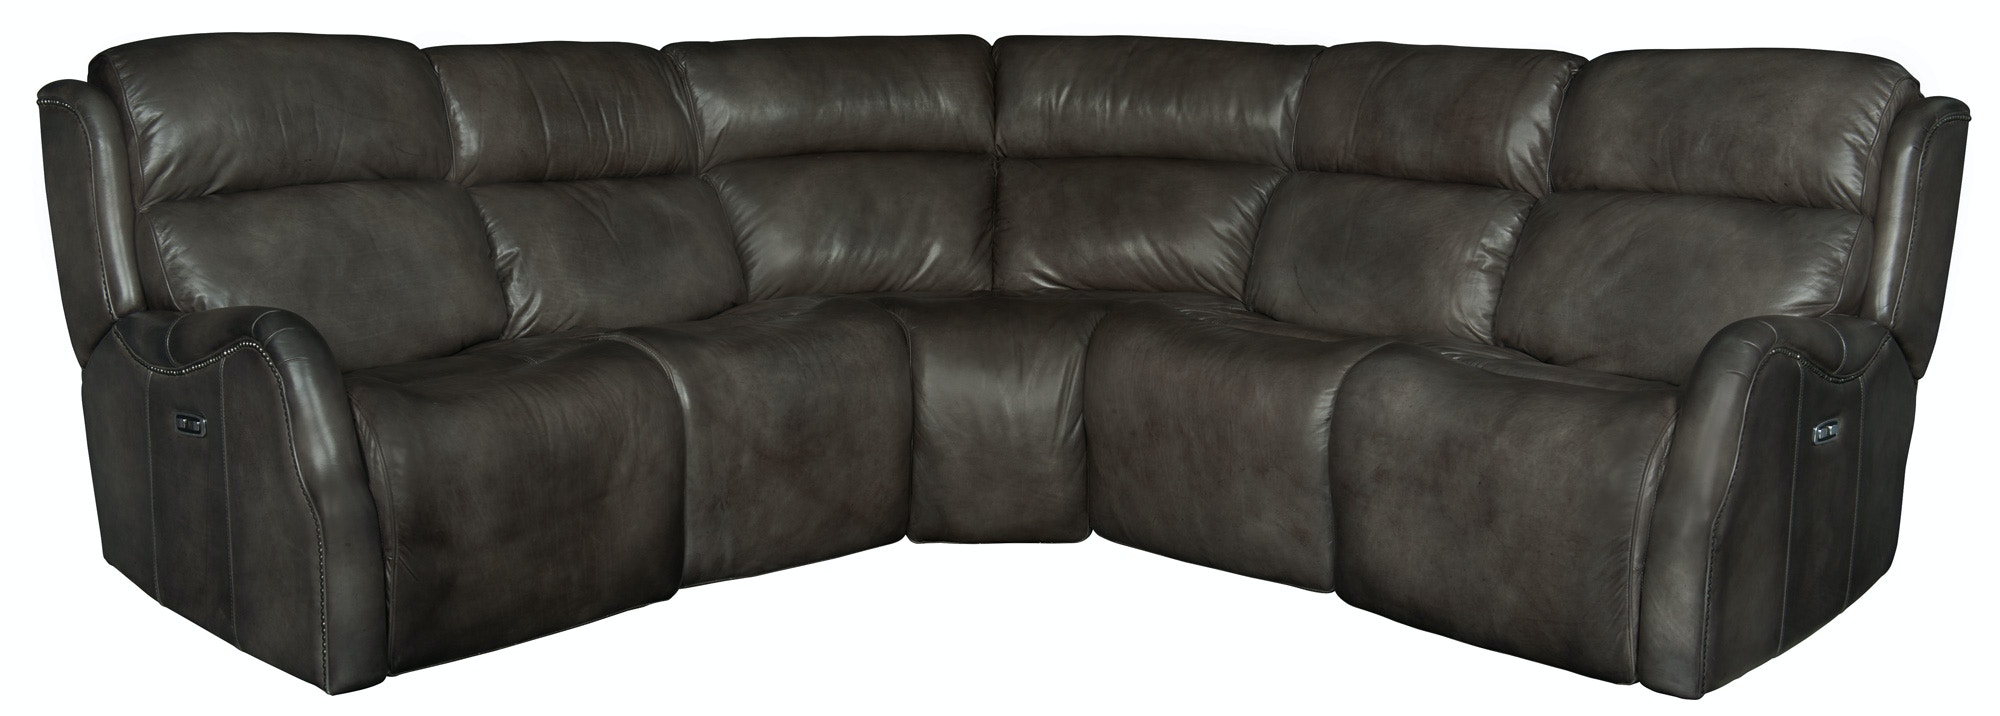 Bernhardt Furniture Derek Power Motion Sectional 352RL370RL 351RL  sc 1 st  Goodu0027s Home Furnishings : bernhardt sectional - Sectionals, Sofas & Couches